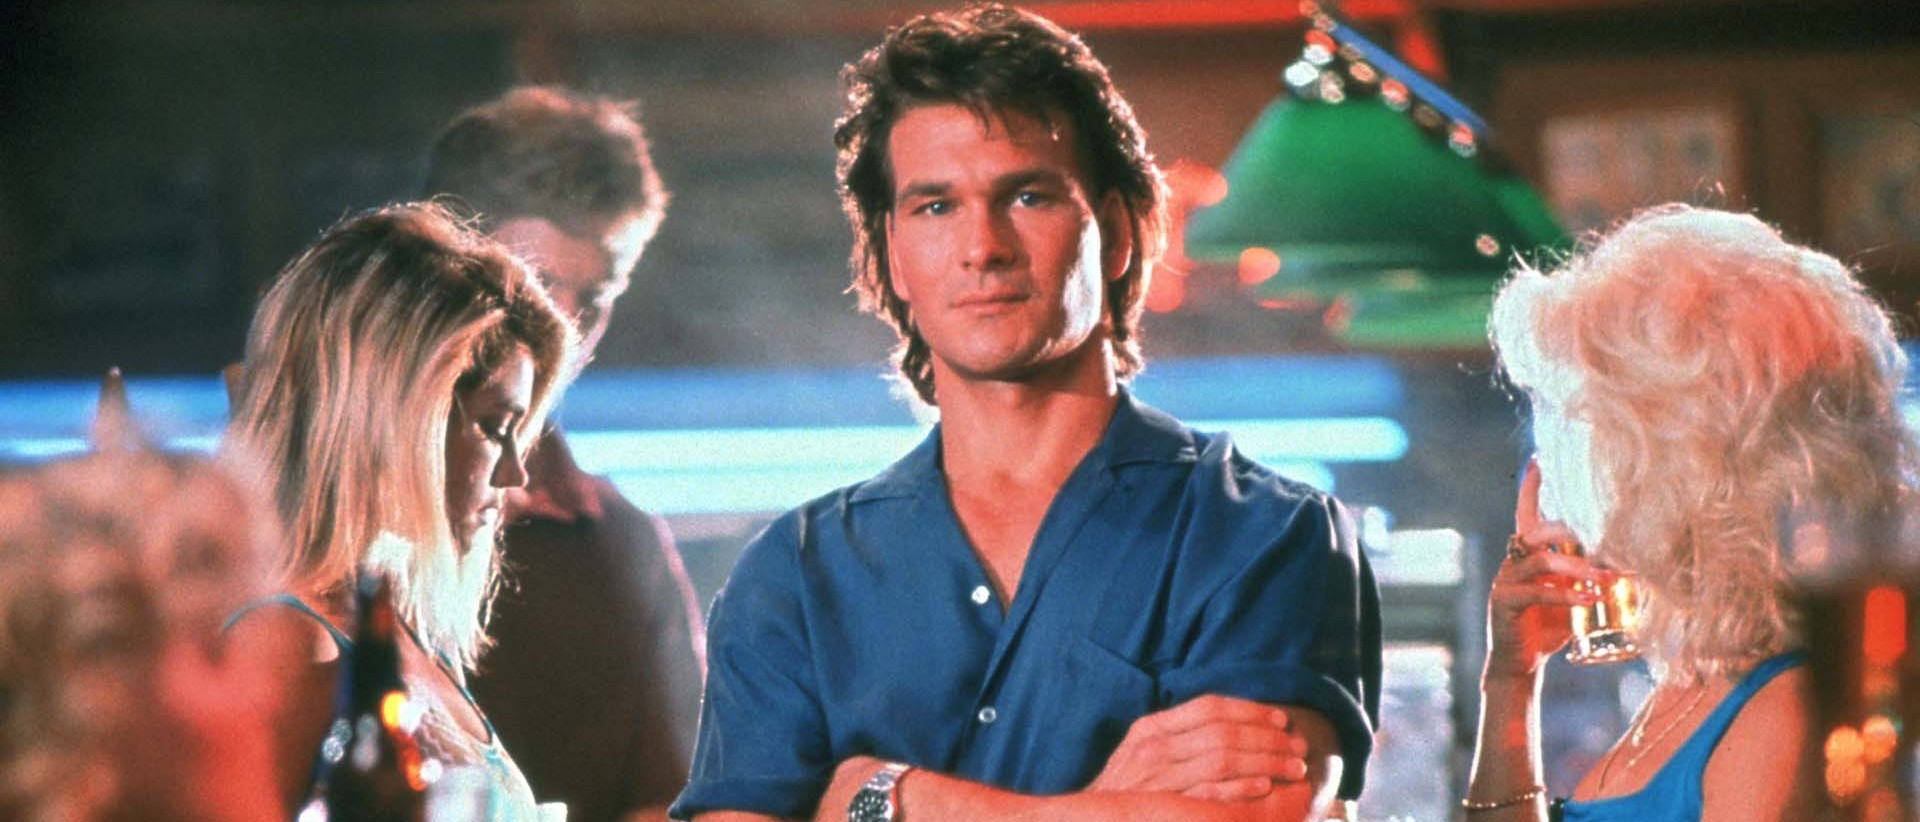 High Quality MGMu0027s Road House Remake Is Speeding Along Nicely. Last Month It Found  Itself A New Patrick Swayze In MMA Fighter / Entourage Star Ronda Rousey,  ...